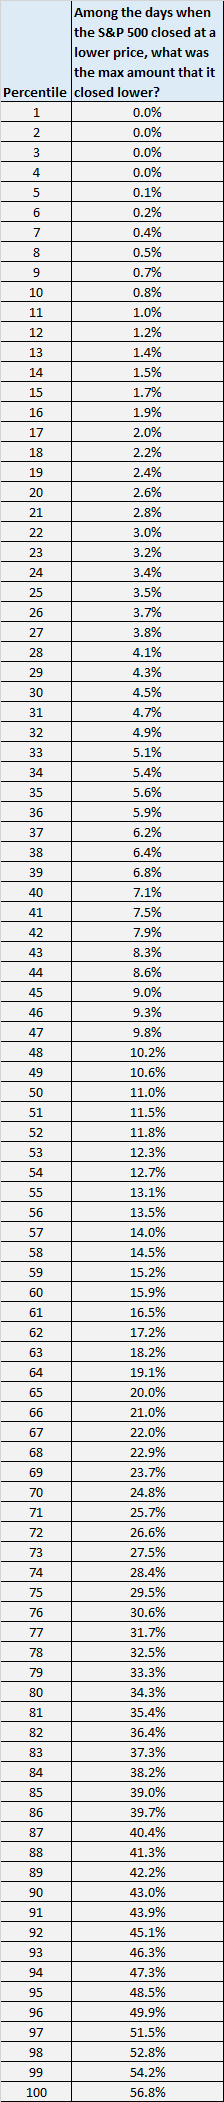 Lowest closing S&P 500 price table